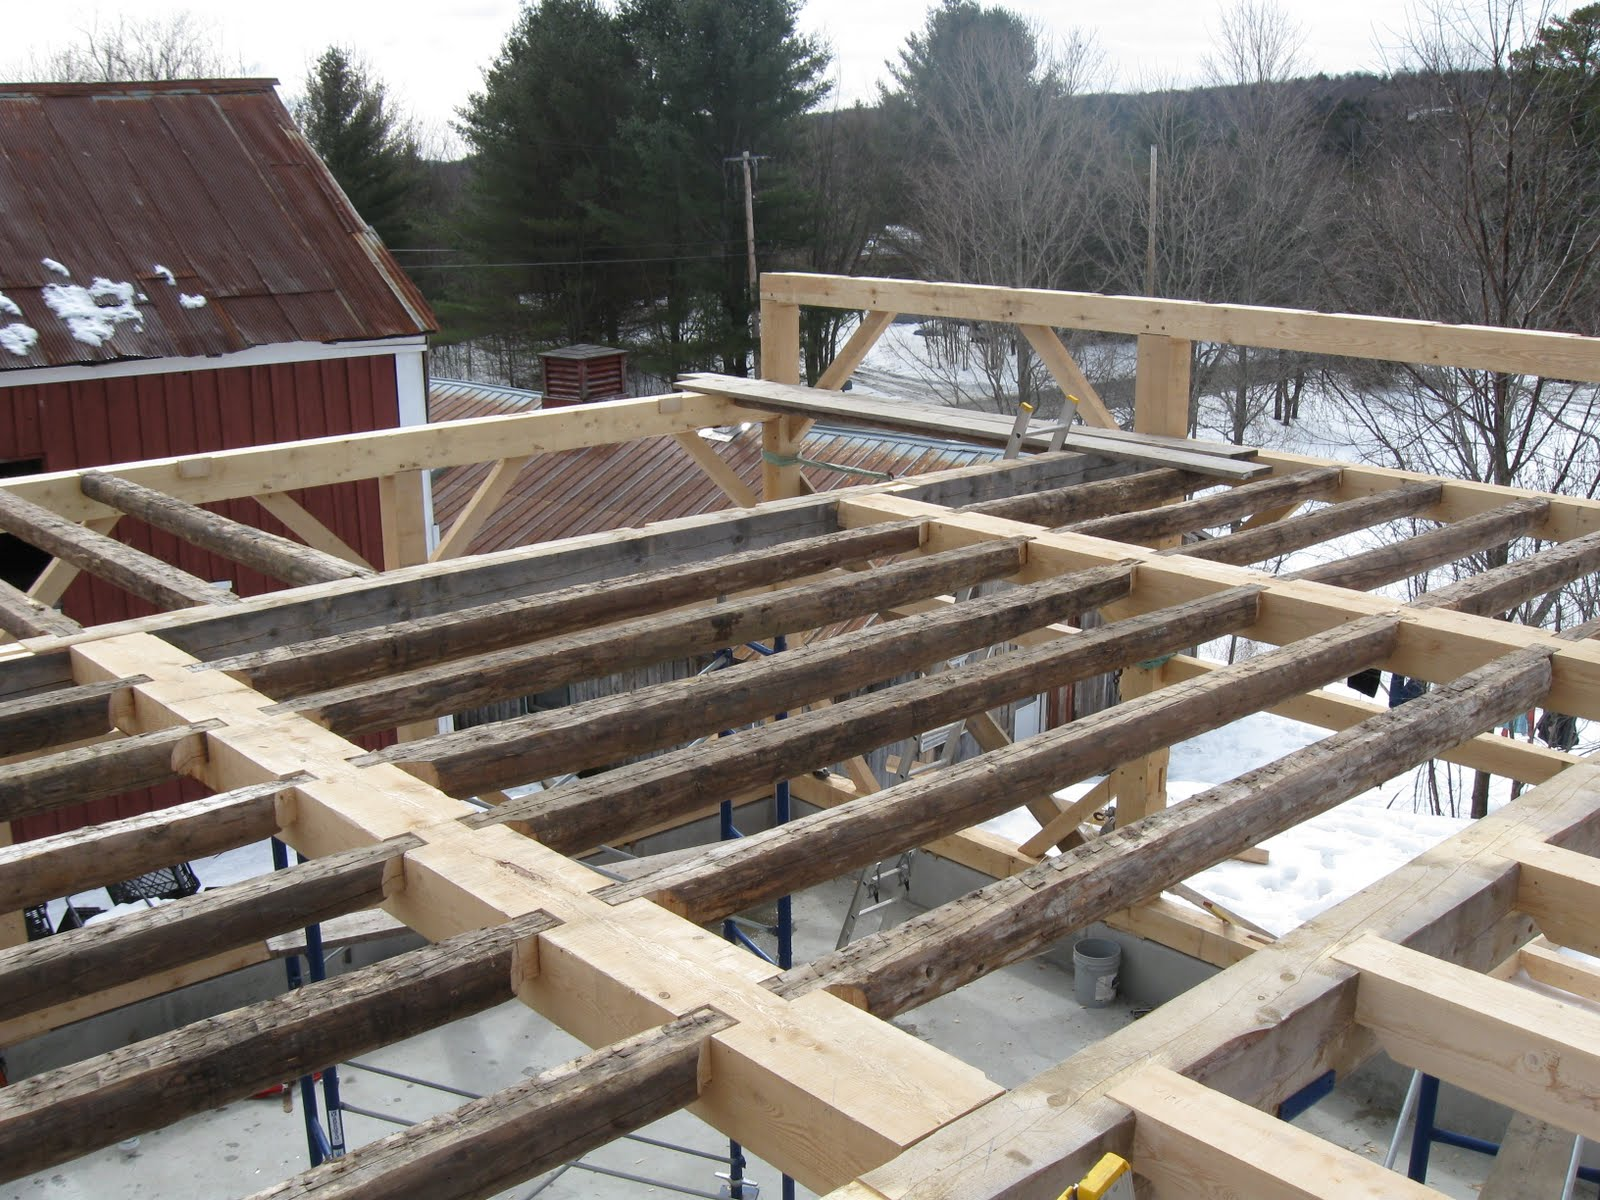 The floor joists of the house were incorporated into the frame.